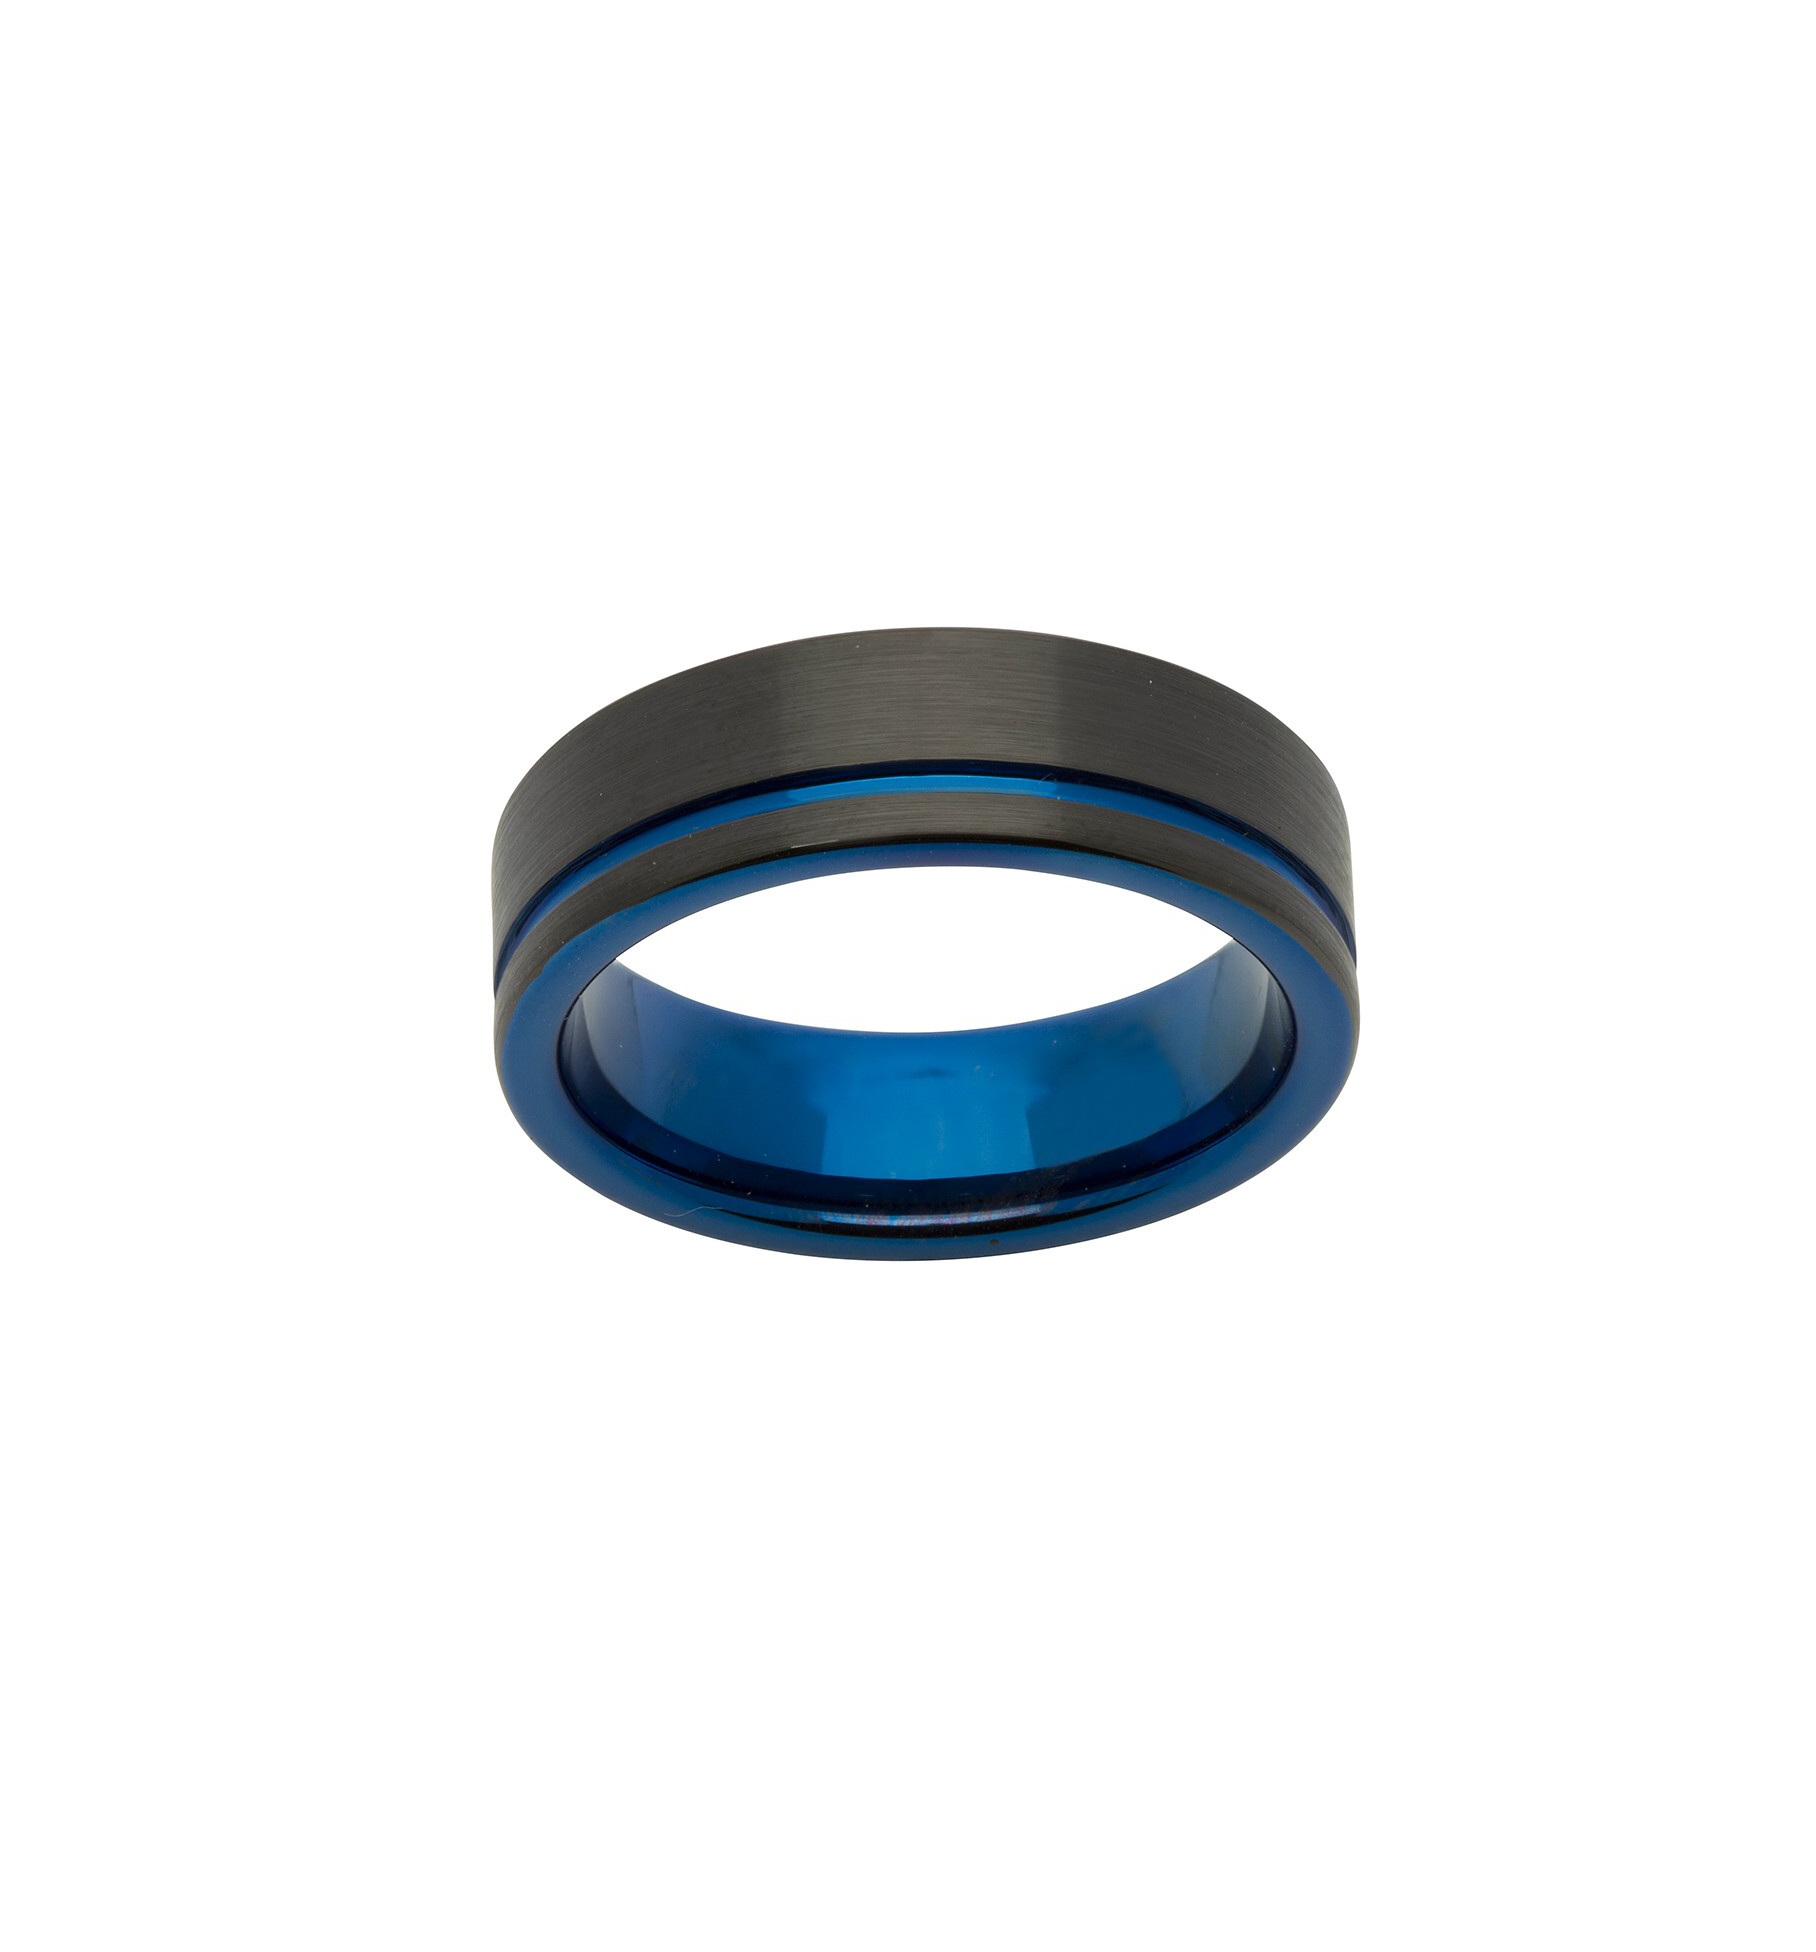 Black Tungsten Ring 7Mm Brushed Offset Blue Stripe Untu/tur058 With Most Recently Released Blue Stripes Rings (Gallery 5 of 25)